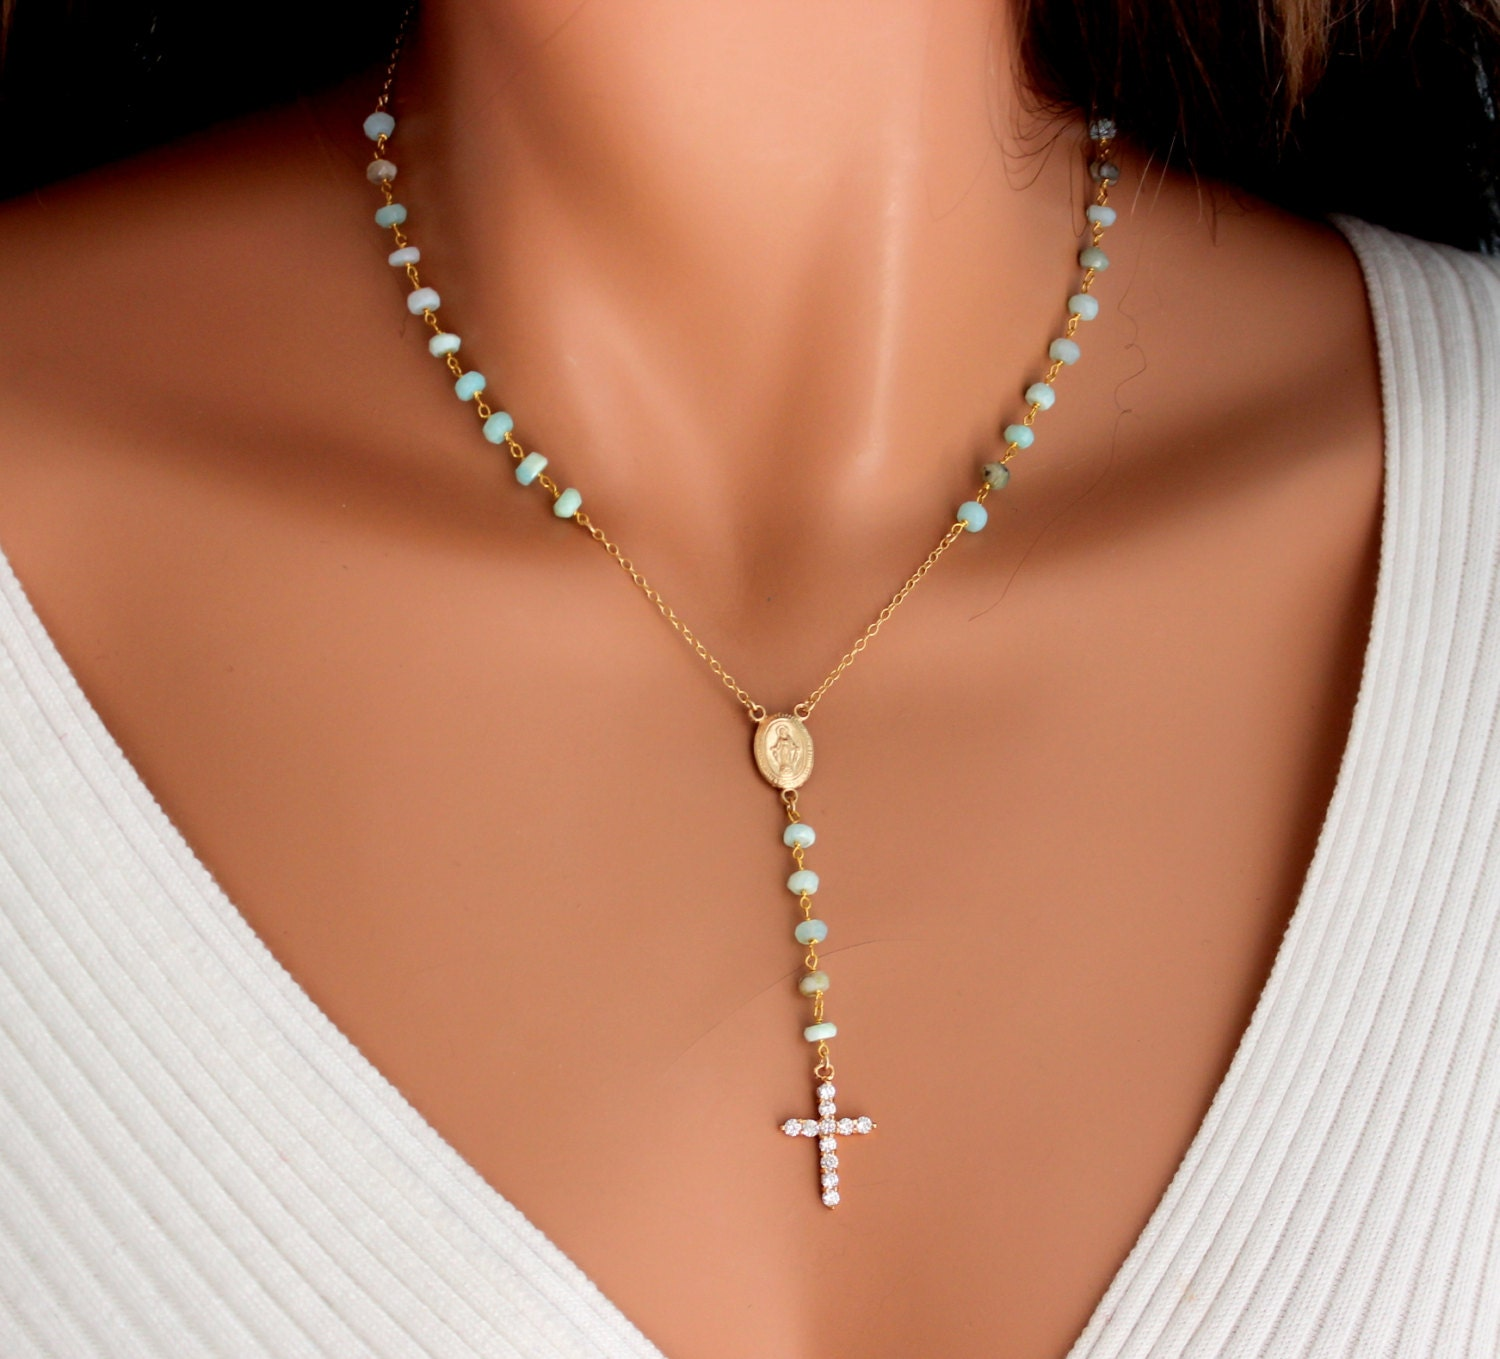 Crucifix Necklace Womens: Peruvian Blue Opal Rosary Necklace Womens Gold Filled Crystal